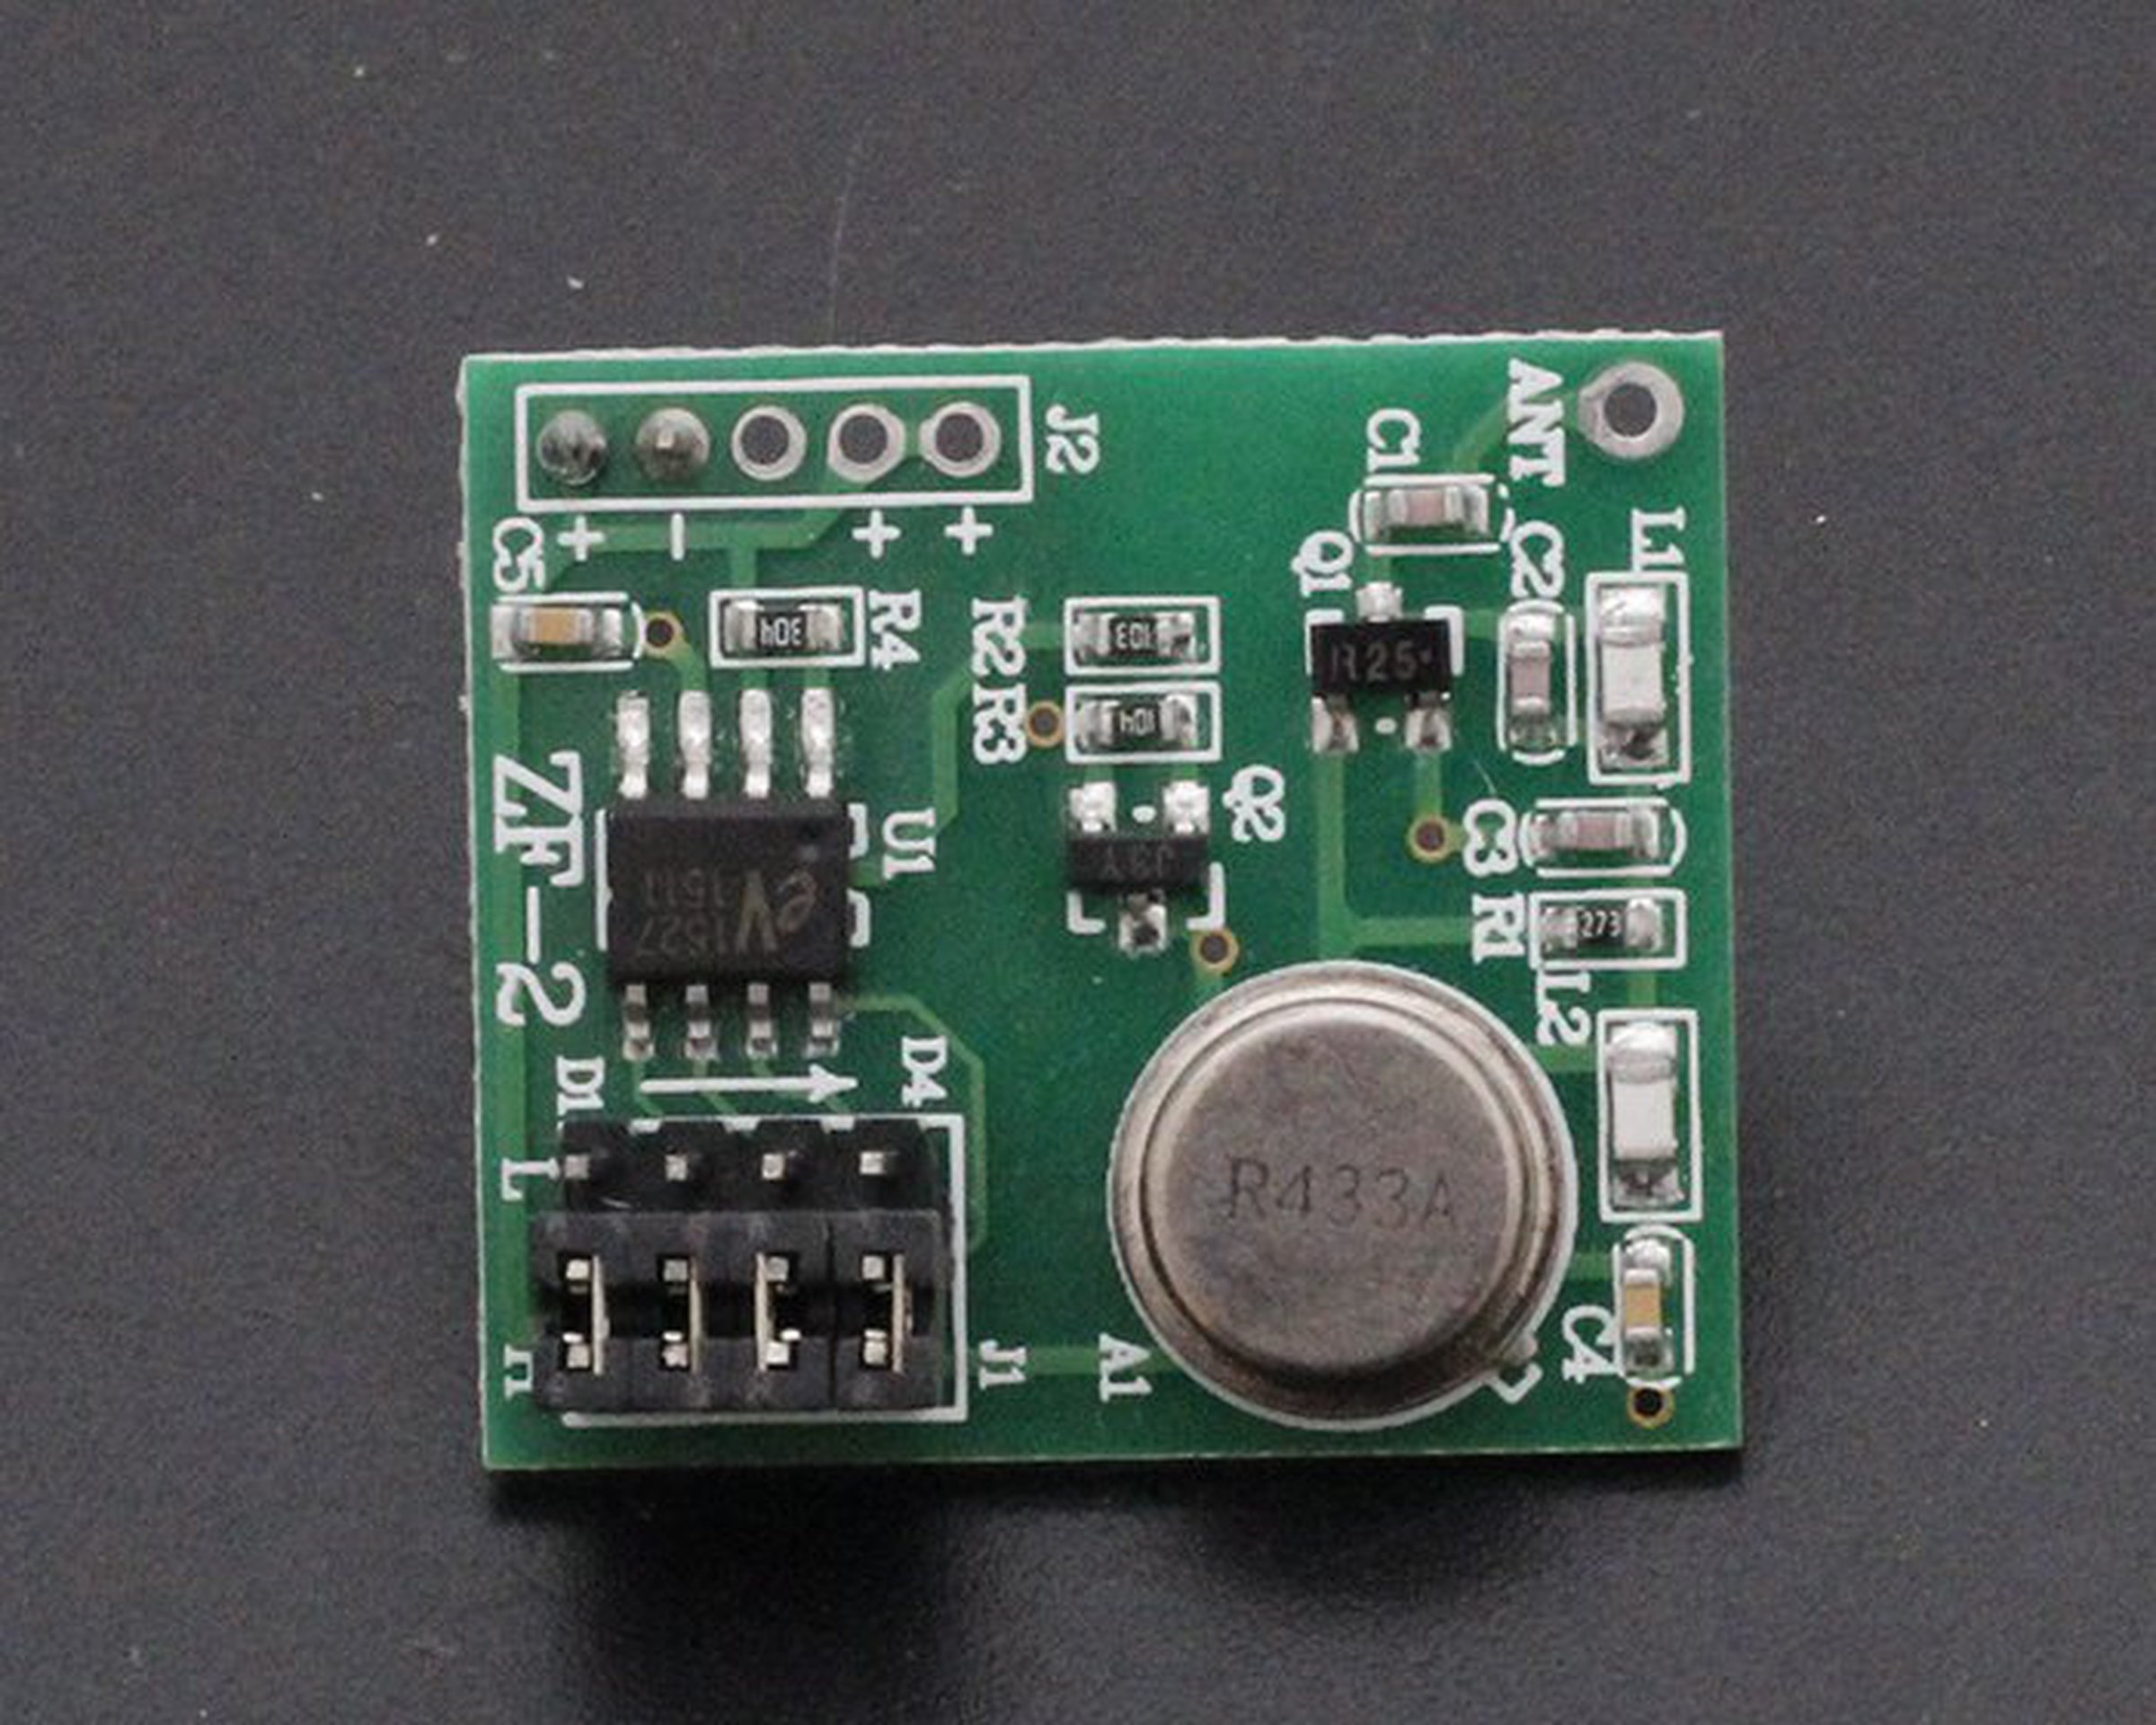 Cns X2 433mhz Wireless Transmitter7518 From Icstation On Tindie Transmitter Circuit 1